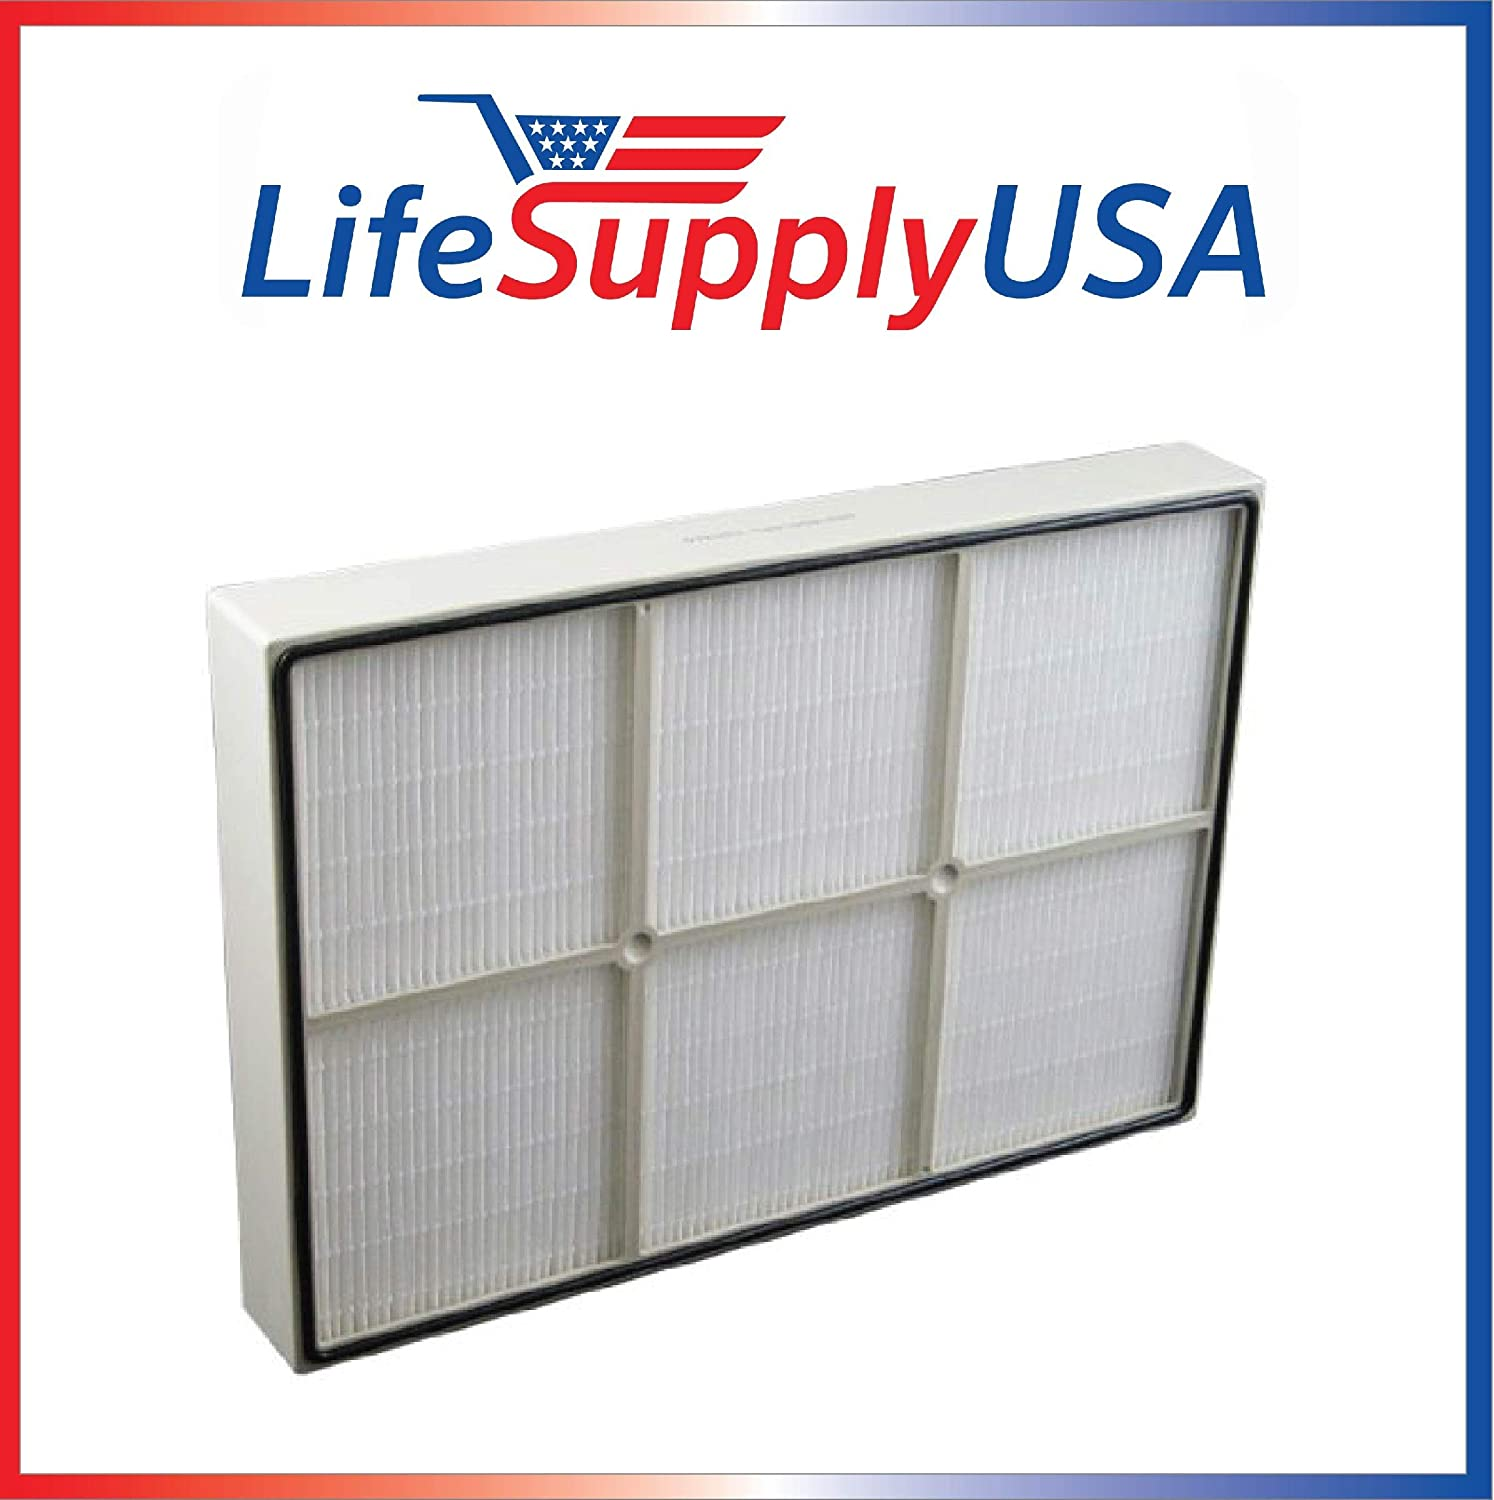 LifeSupplyUSA True HEPA Replacement Filter Compatible with Kenmore 83353, 83374, 83234, Small 1183051 Sears Kenmore Air Cleaner